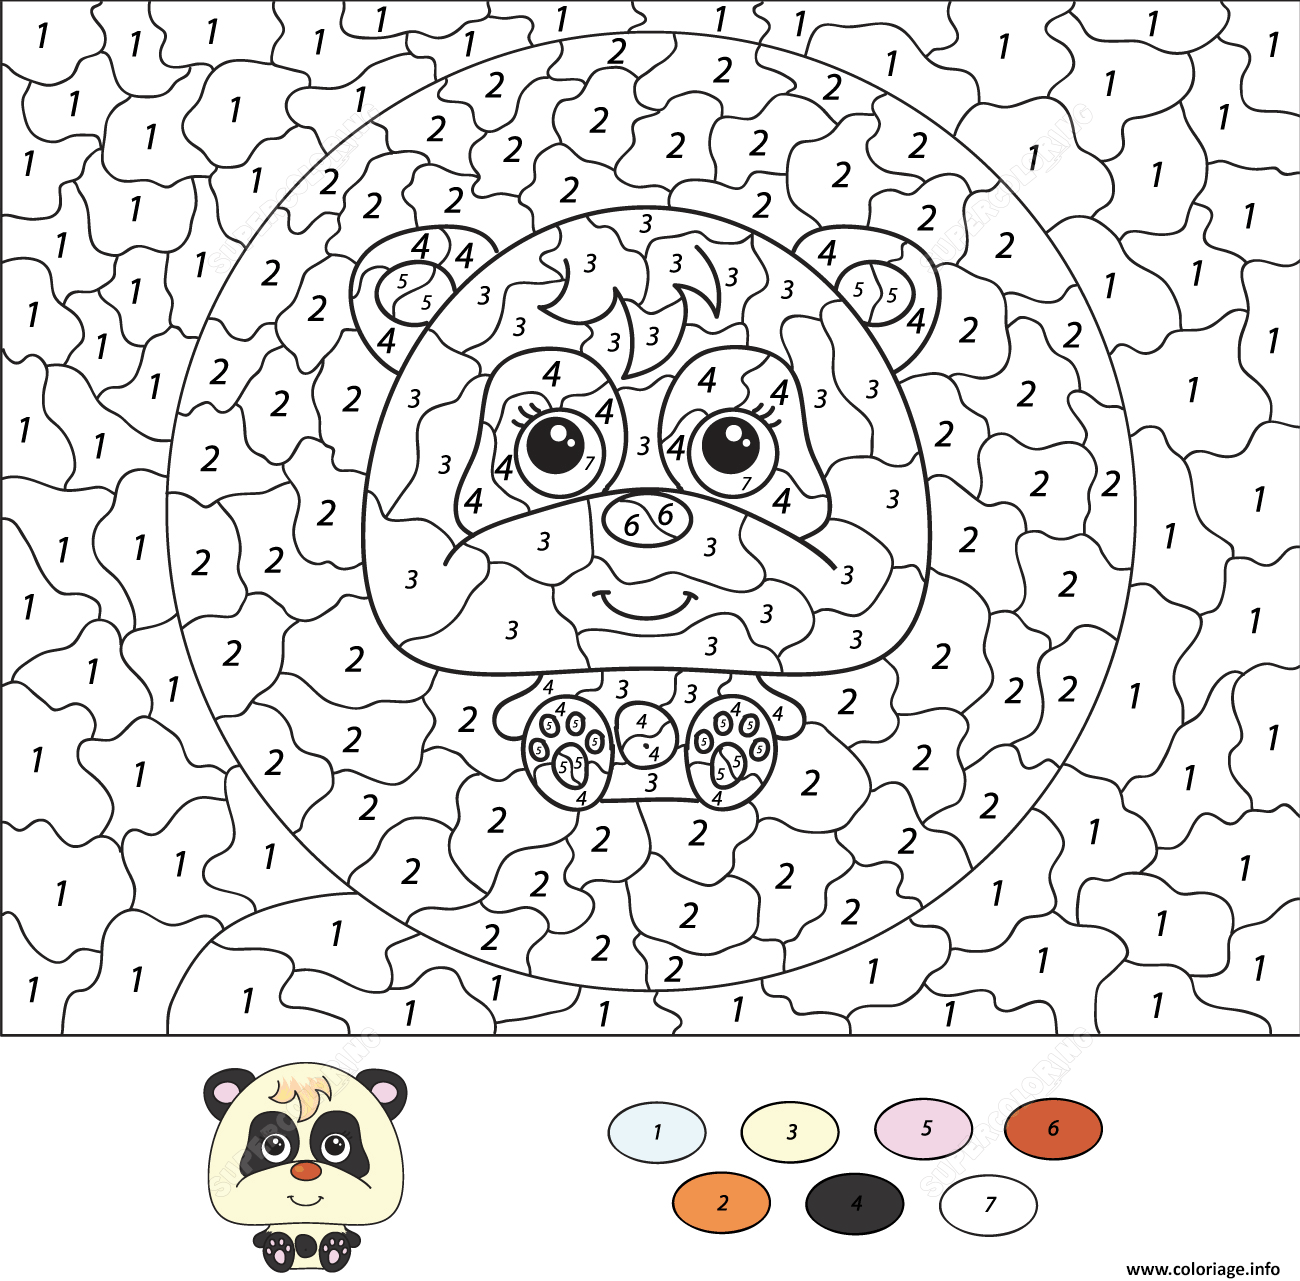 Coloriage cartoon panda magique dessin - Coloriage panda ...